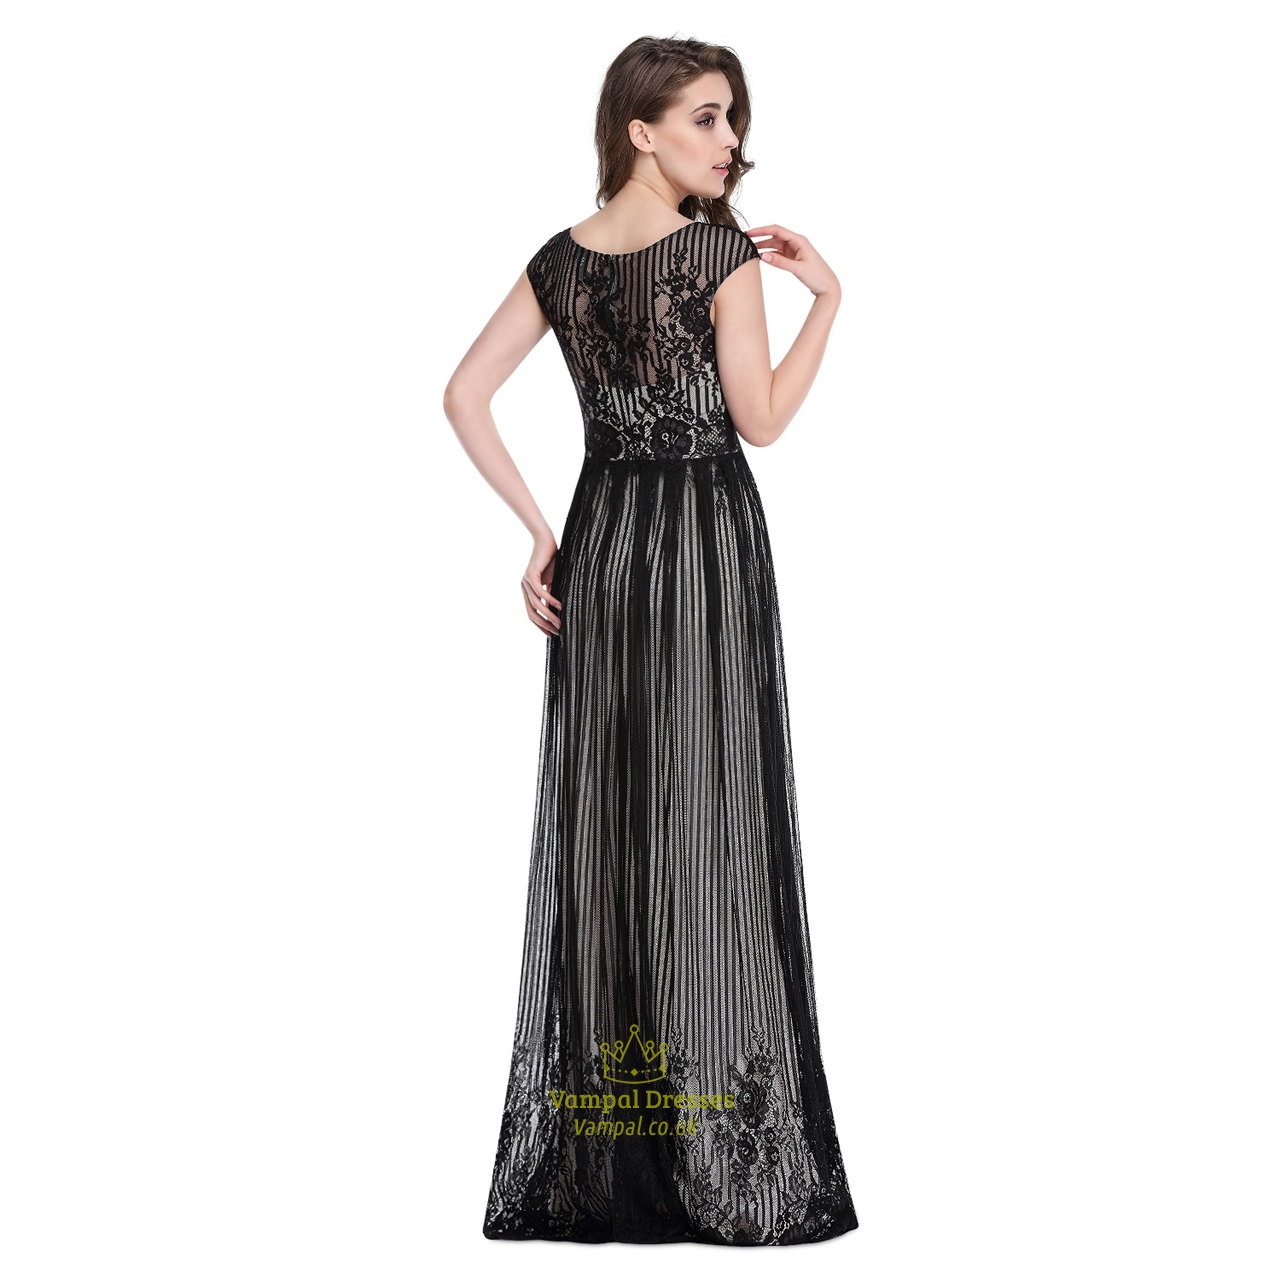 Lace Dresses With Sleeves: Black Floor Length Cap Sleeves Prom Dress With Lace